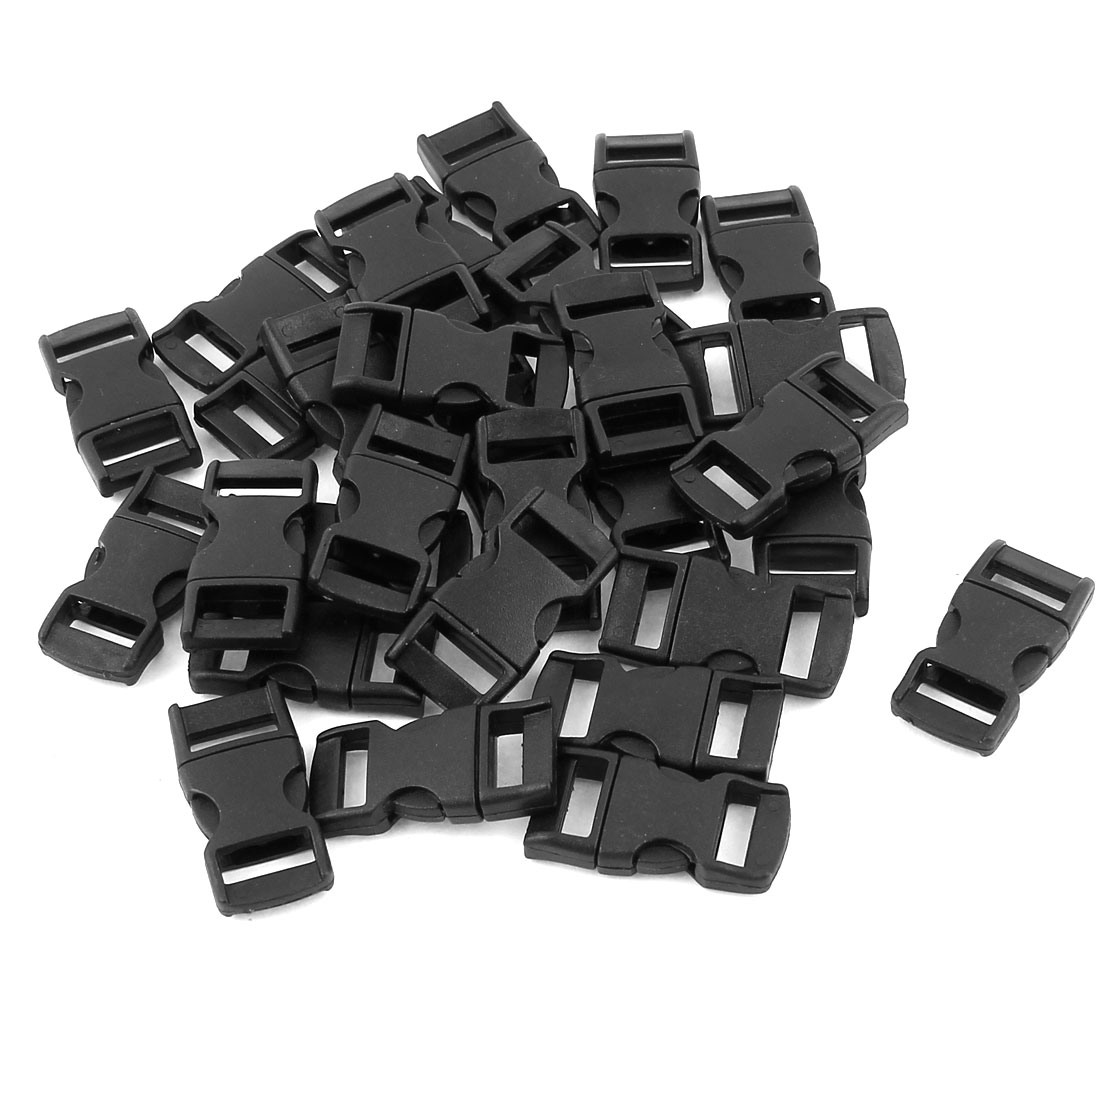 30 Pcs 10mm Webbing Straps Plastic Clasp Side Quick Release Buckle Black